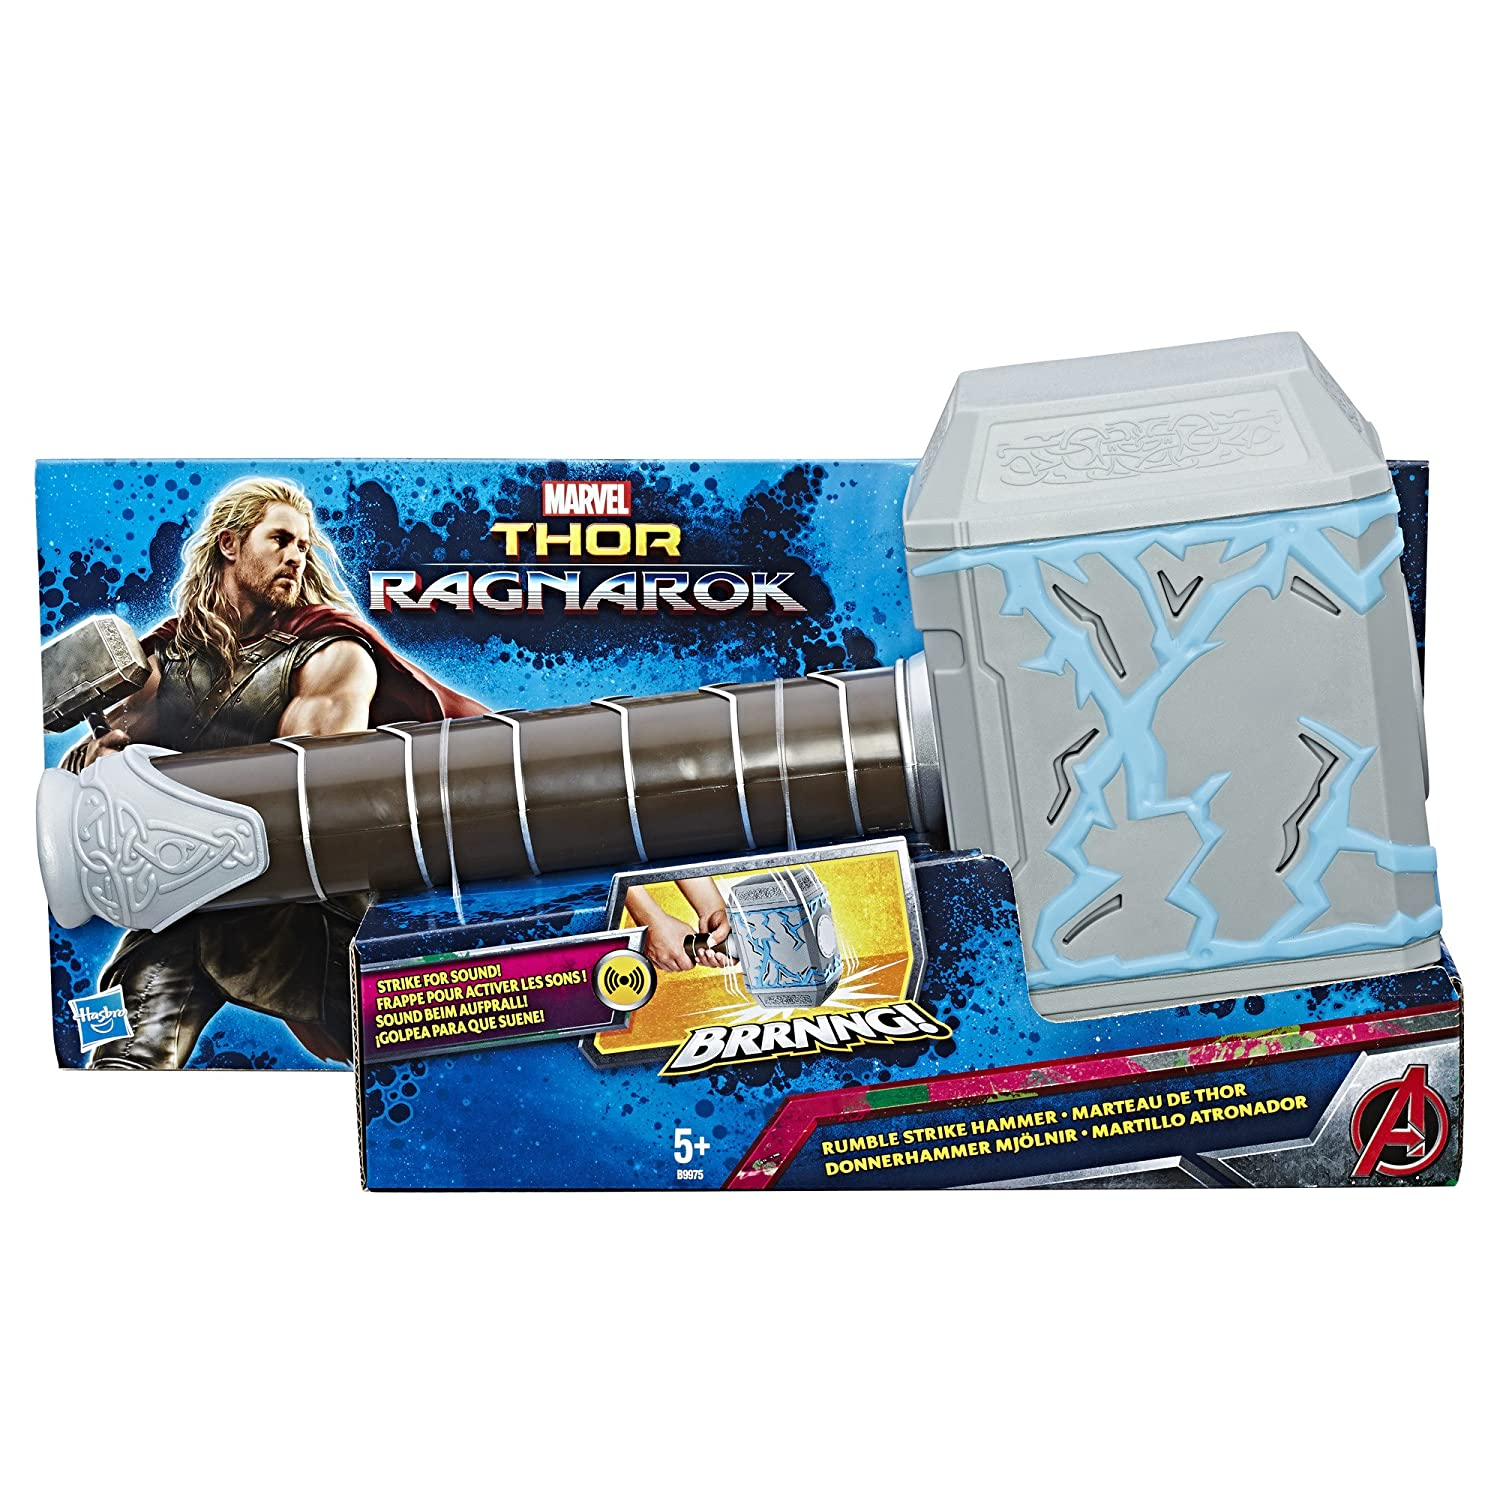 Marvel B9975EU4 Thor Ragnarok Rumble Strike Hammer Figure, Black Hasbro